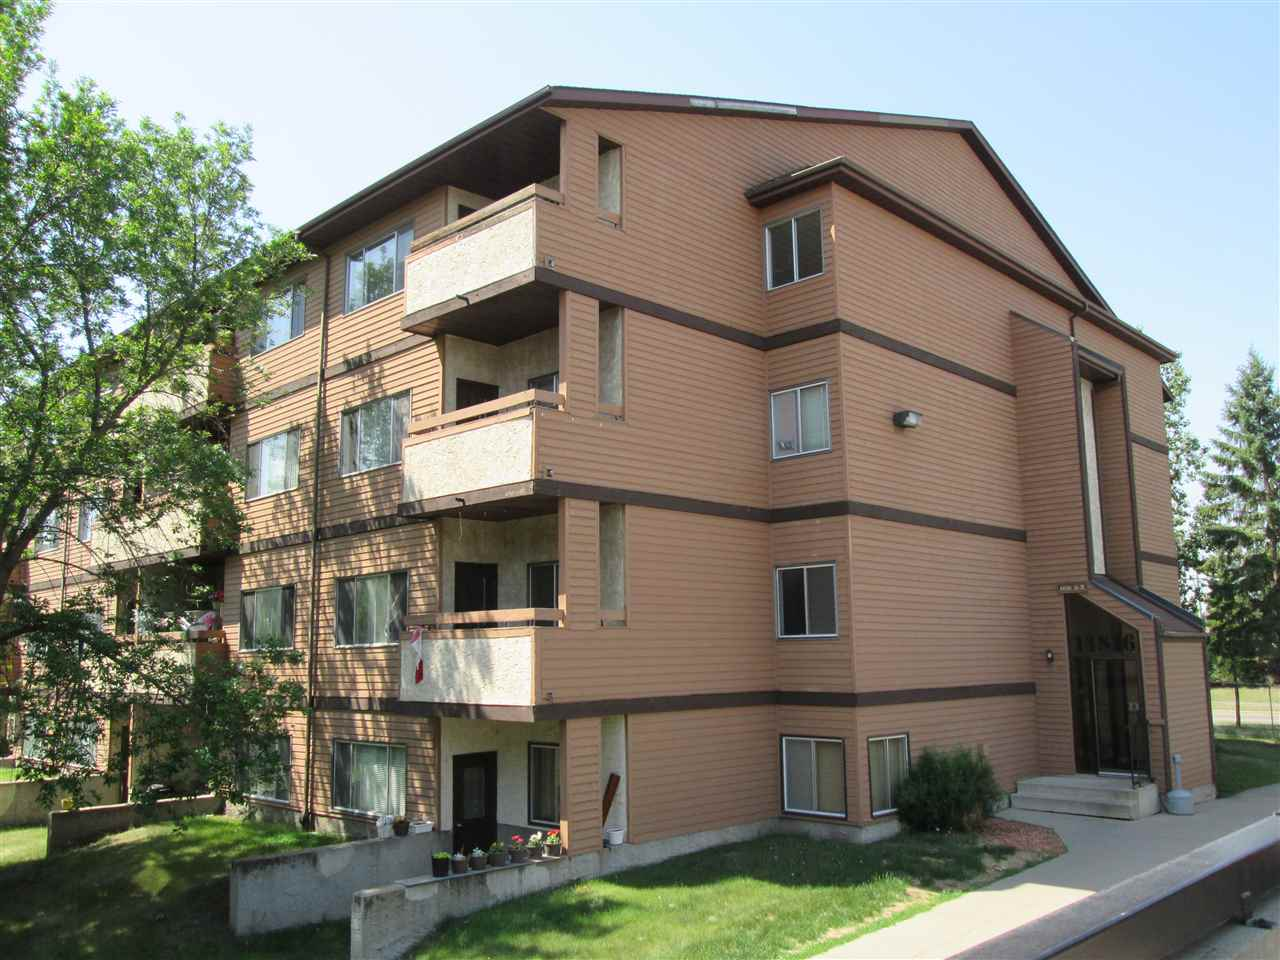 Neat and clean 2 bedroom condo with balcony.  Great layout with a cute and well laid out kitchen,  plenty of cupboard and counters.  Open concept living and dining room with lots of sun light.   A really good sized storage room for all those extras.  Condo fees include heat, water and covered parking. Great location close to public transportation and shopping and only minutes to the Anthony Henday.